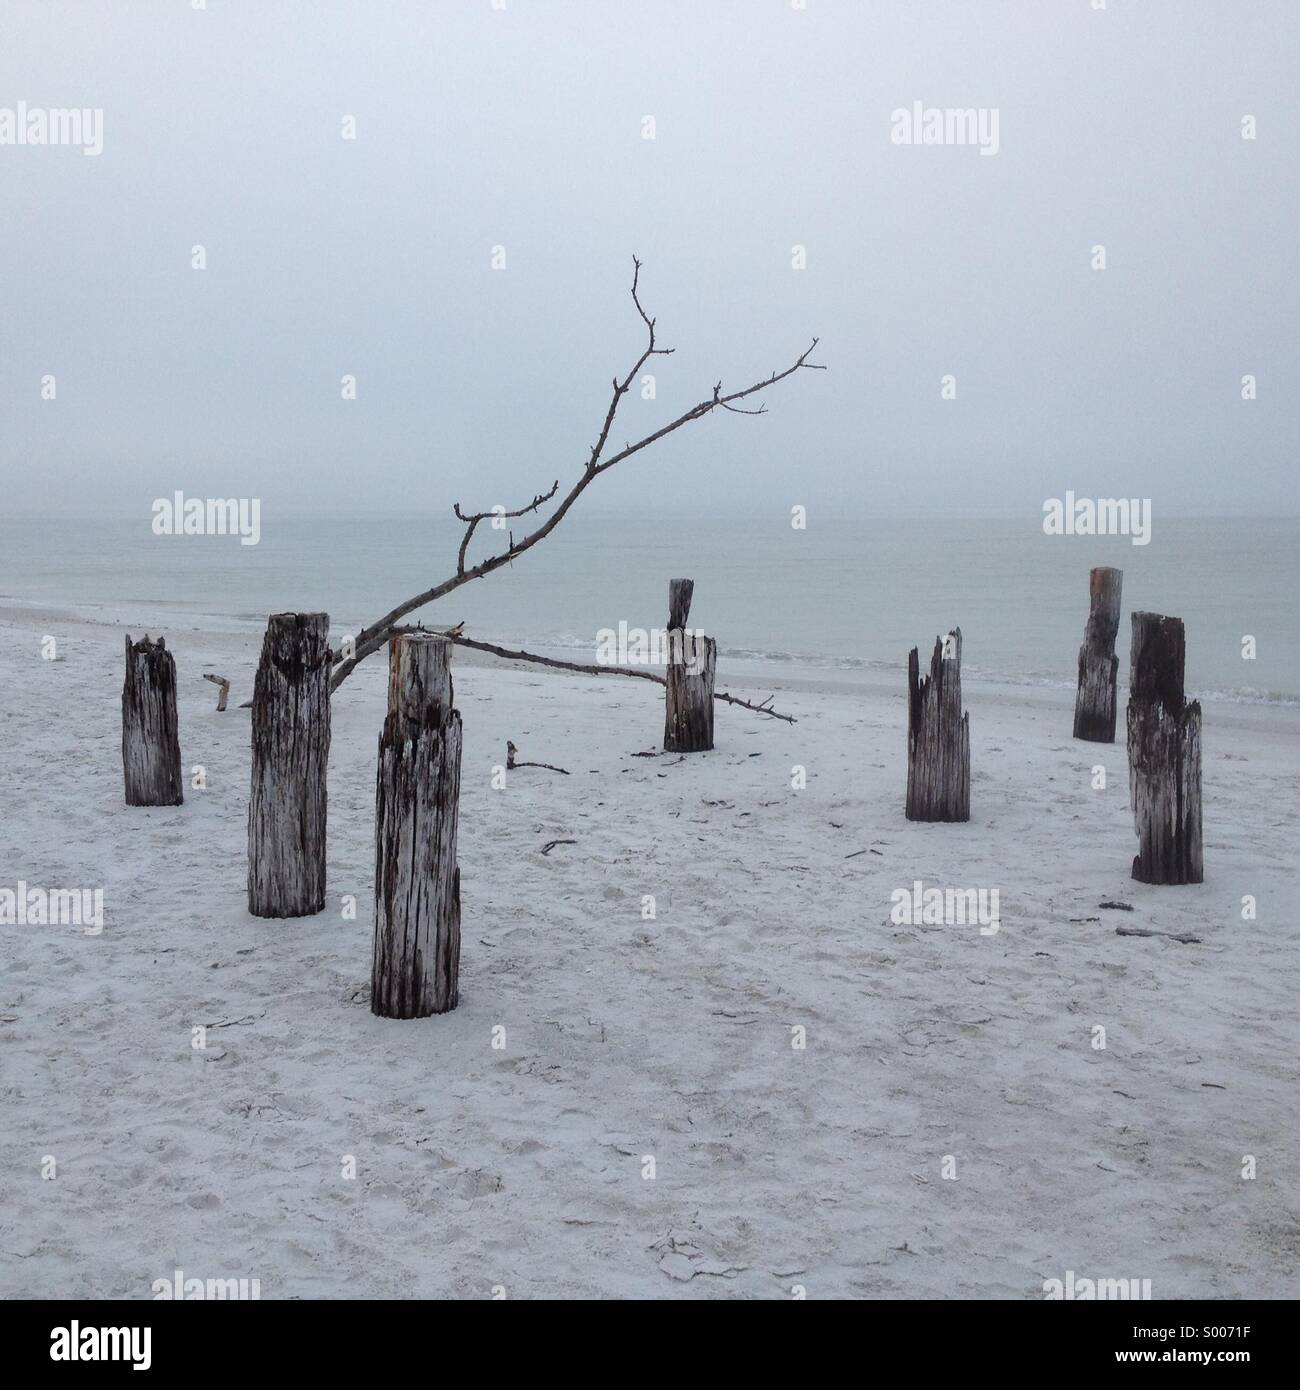 Old dock/ jetty in mist on Fort Myers Beach, Florida, USA Stock Photo